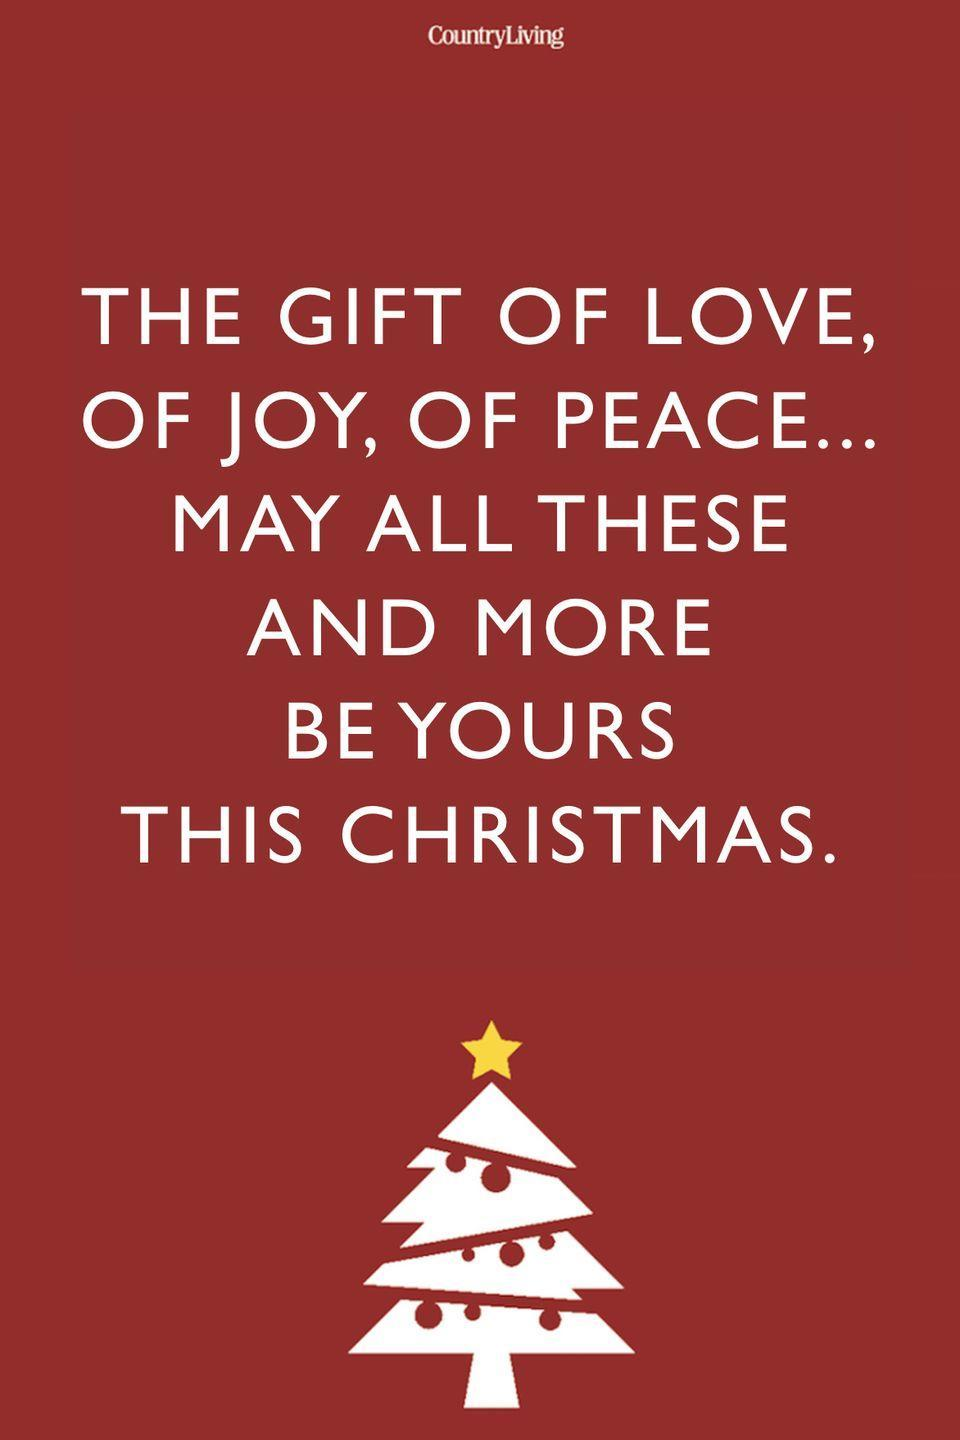 <p>The gift of love, of joy, of peace... May all these and more be yours this Christmas.</p>